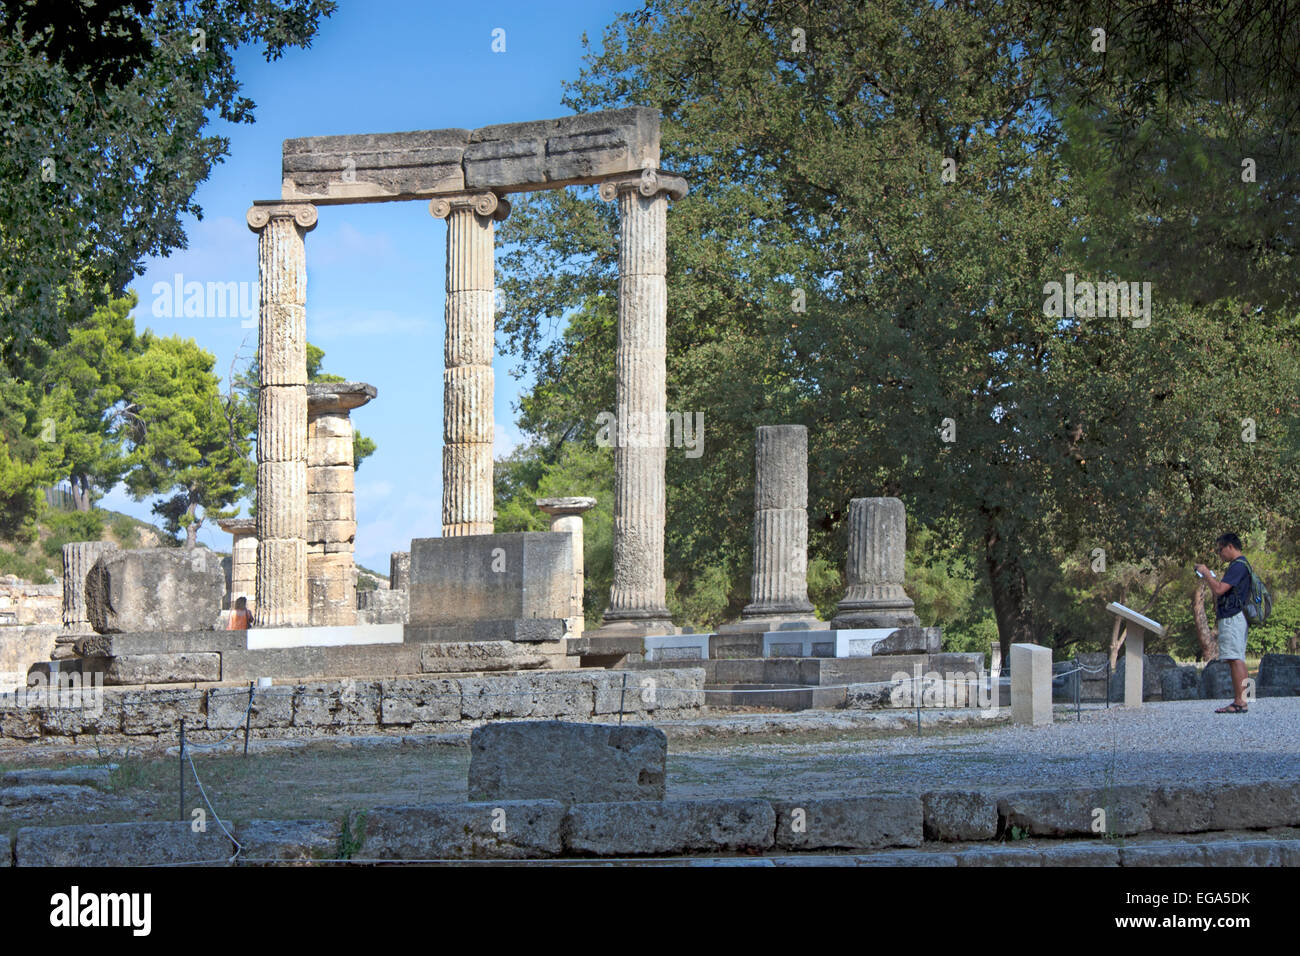 Ruins of the Philippeion, with its three remaining Ionic columns at Ancient Olympia, The Peloponnese Greece - Stock Image